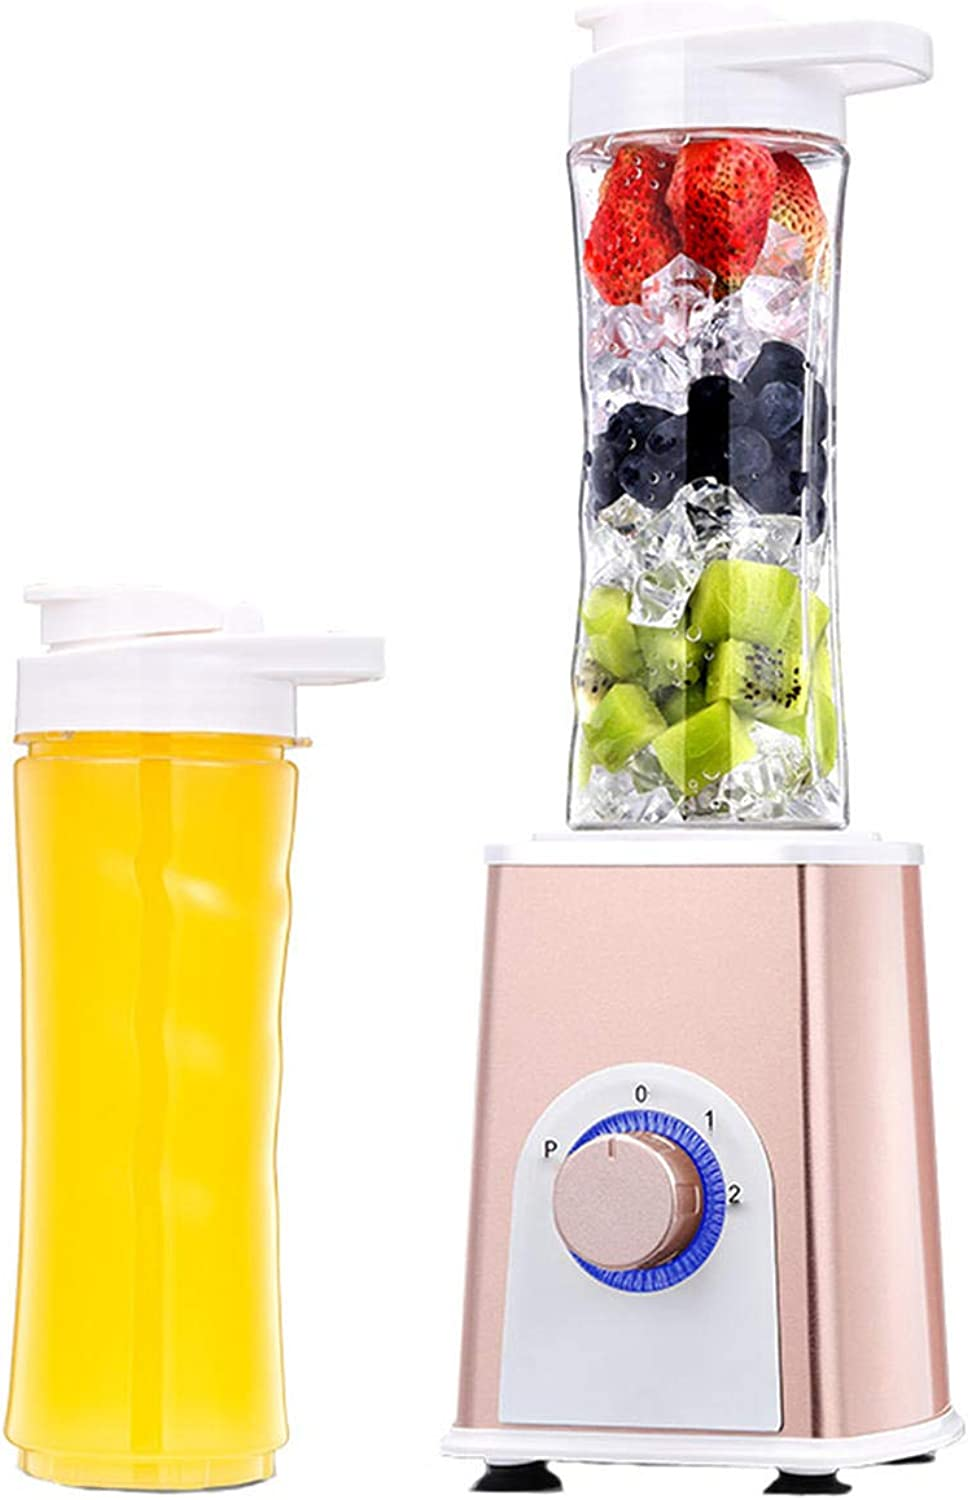 muchas sorpresas Juicer Fruit Cup Cup Cup Portable Juicer Mini Juicer @UpTamaño  contador genuino